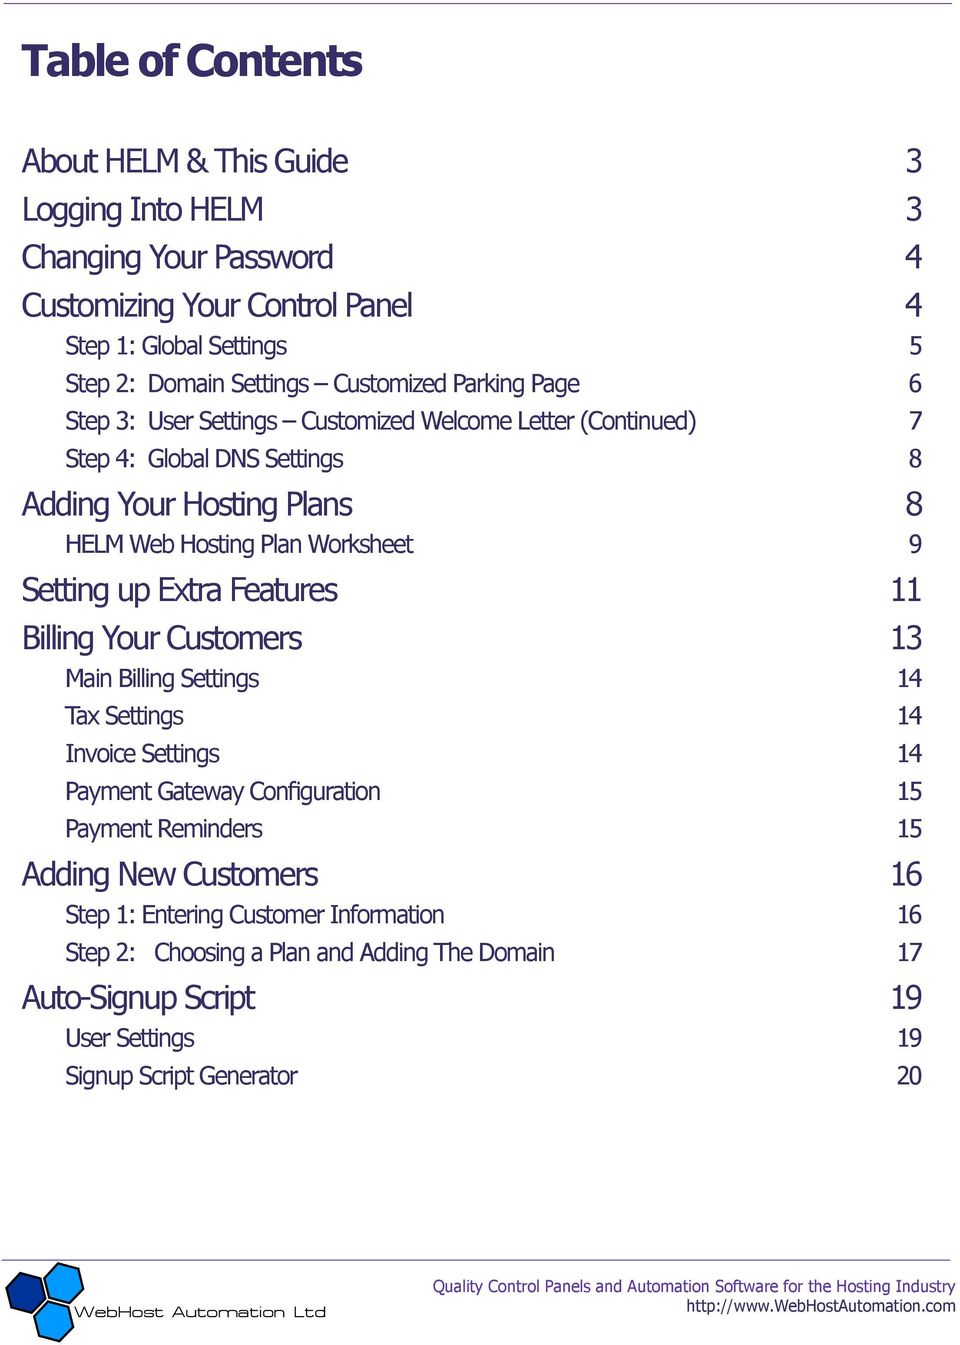 Worksheet 9 Setting up Extra Features 11 Billing Your Customers 13 Main Billing Settings 14 Tax Settings 14 Invoice Settings 14 Payment Gateway Configuration 15 Payment